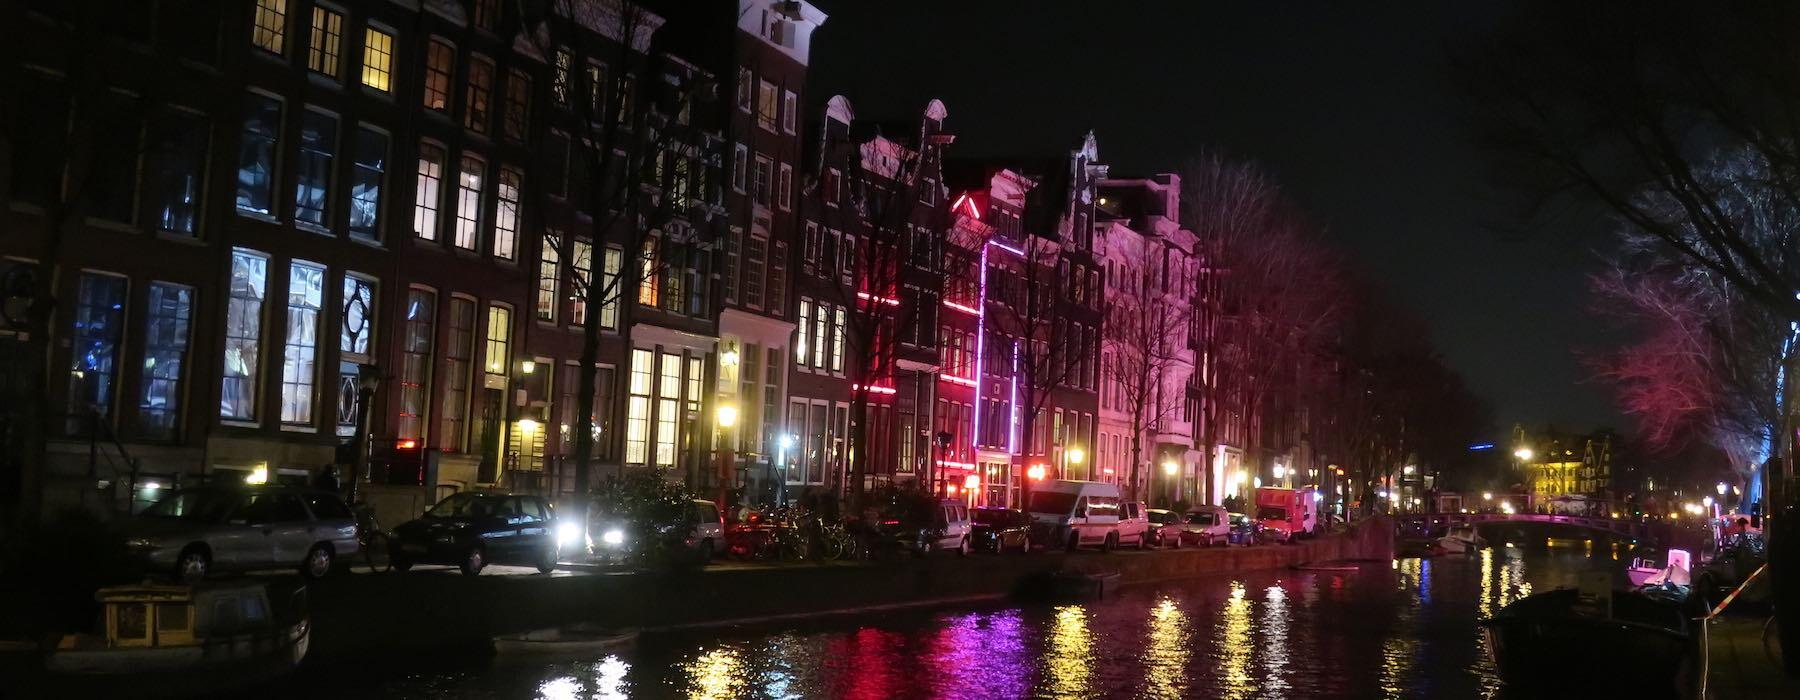 Best Amsterdam Red Light District pictures